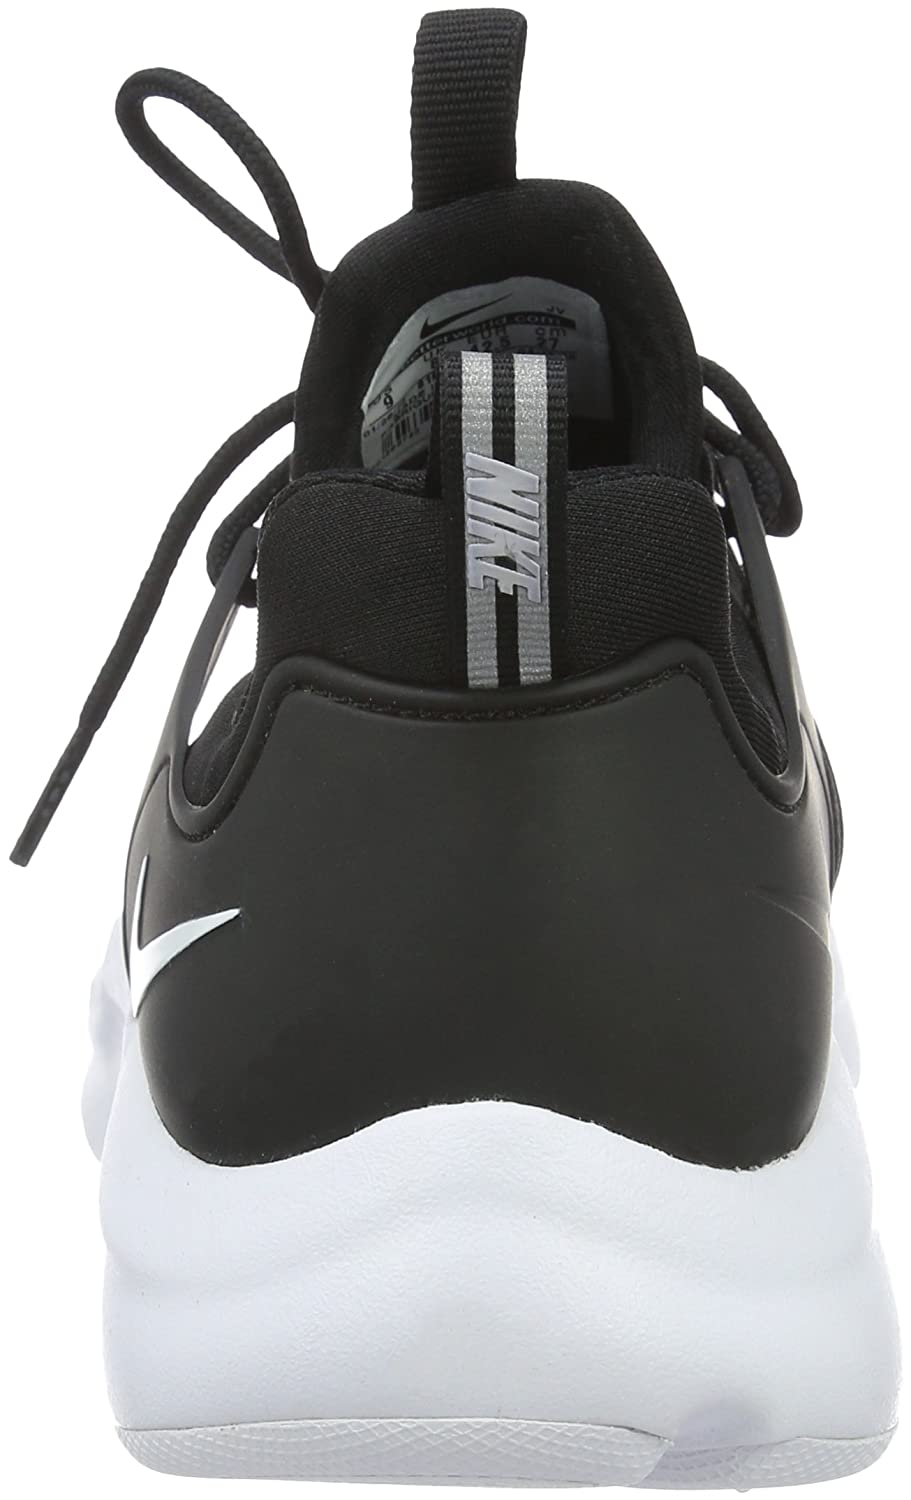 NIKE Men's Darwin Casual Shoes Lightweight Comfort Athletic M Running Sneaker B018Z0SGGQ 11.5 M Athletic US|Black/Black-white 9d2dee